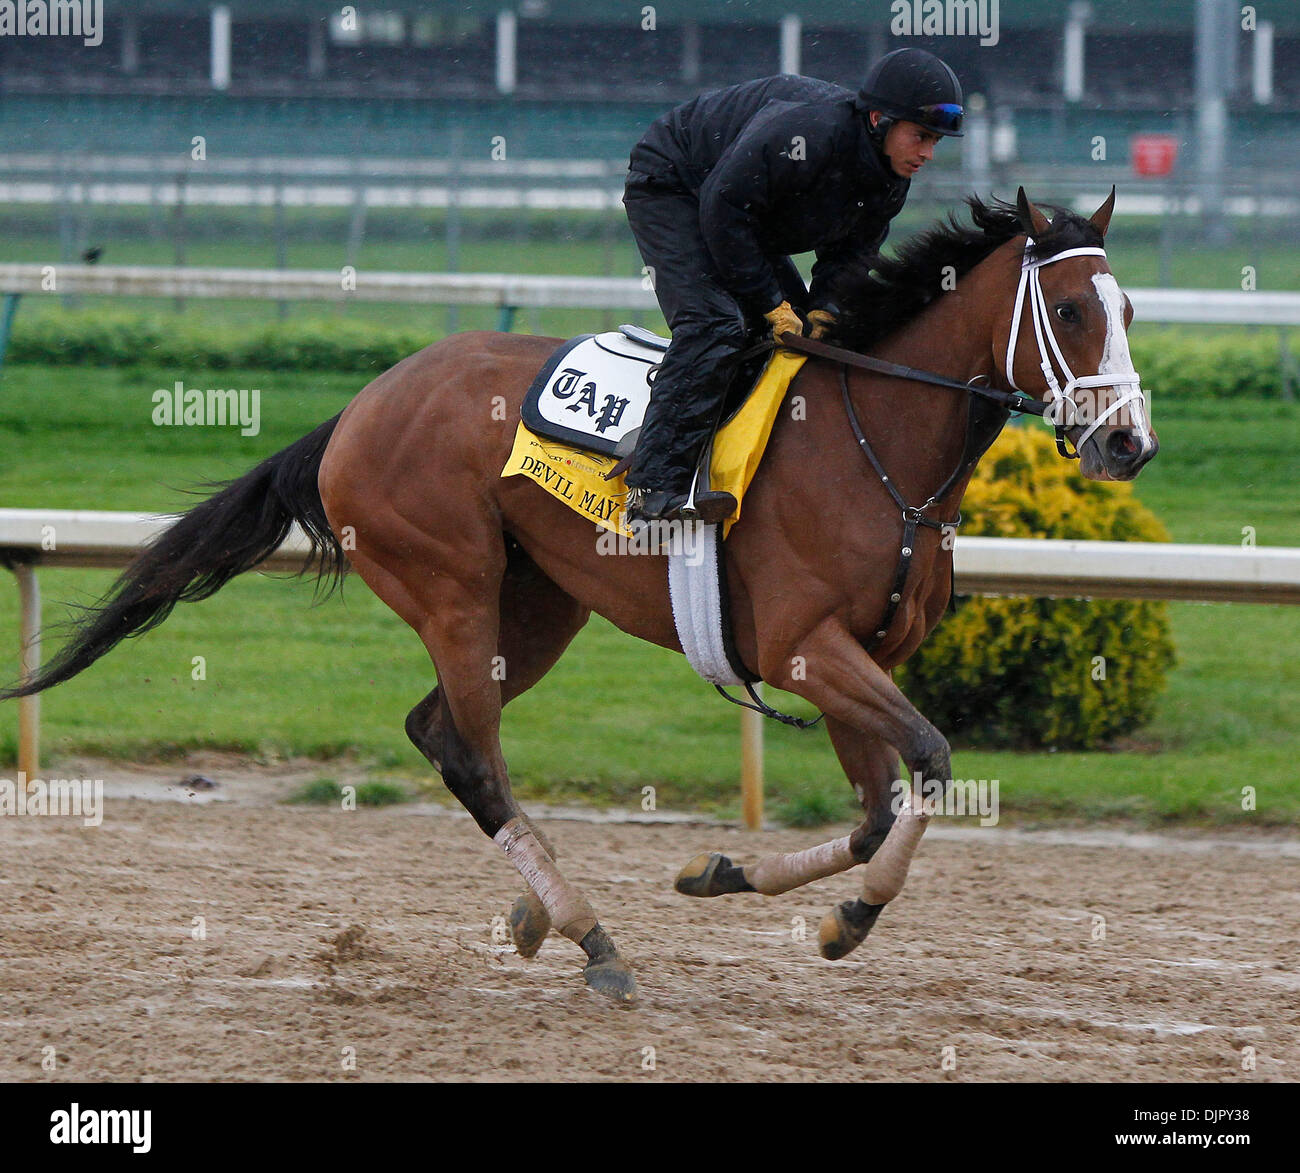 Apr. 27, 2010 - Louisville, Kentucky, U.S. - Devil May Care with  Horacio De Paz up, during Derby preparation at Stock Photo